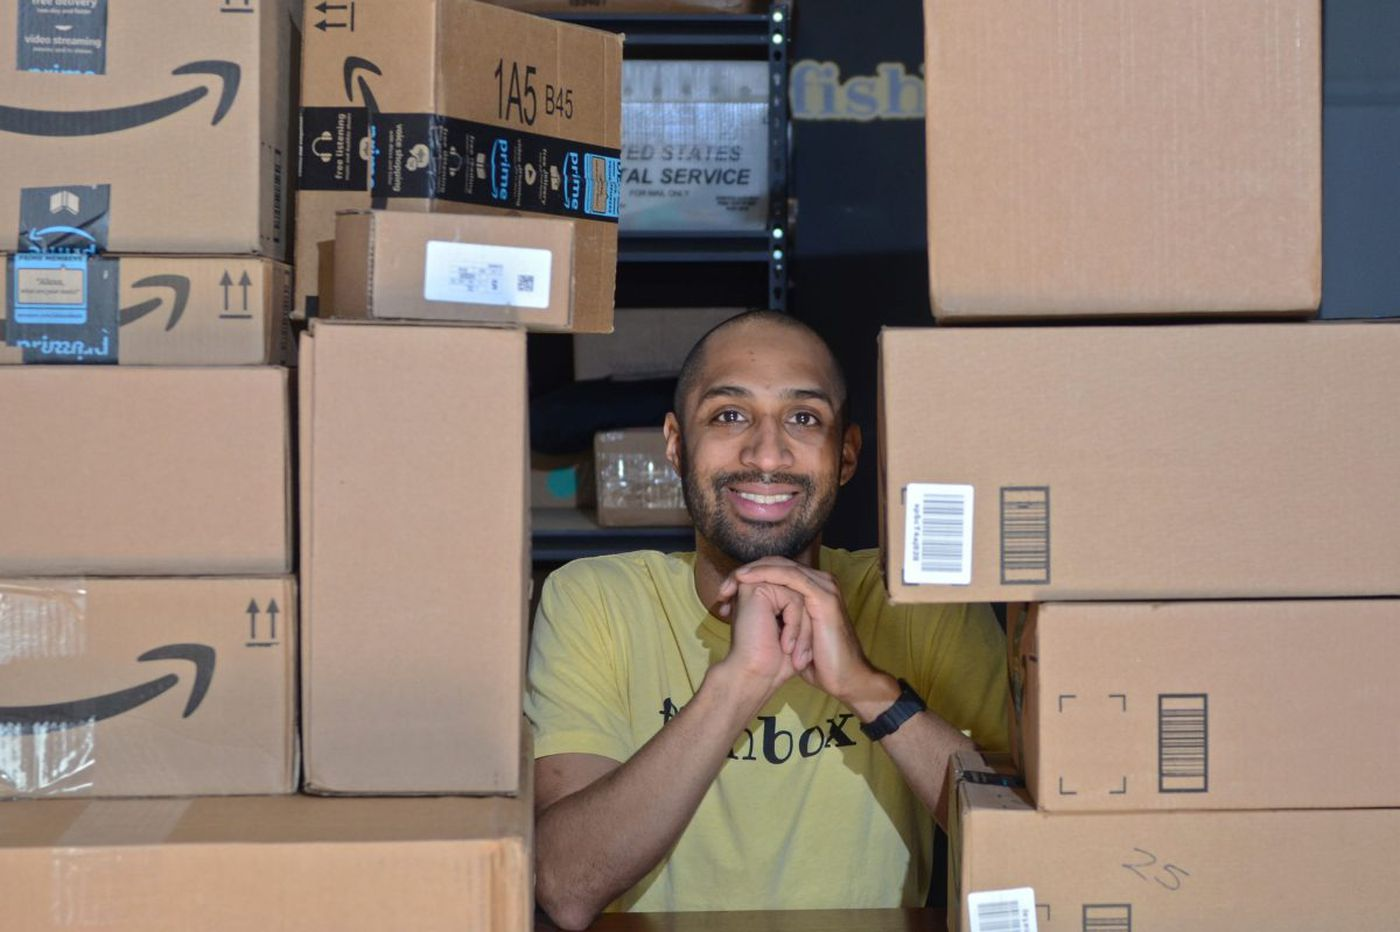 Amazon and package thieves in Philly are start-up Fishbox's secret sauce